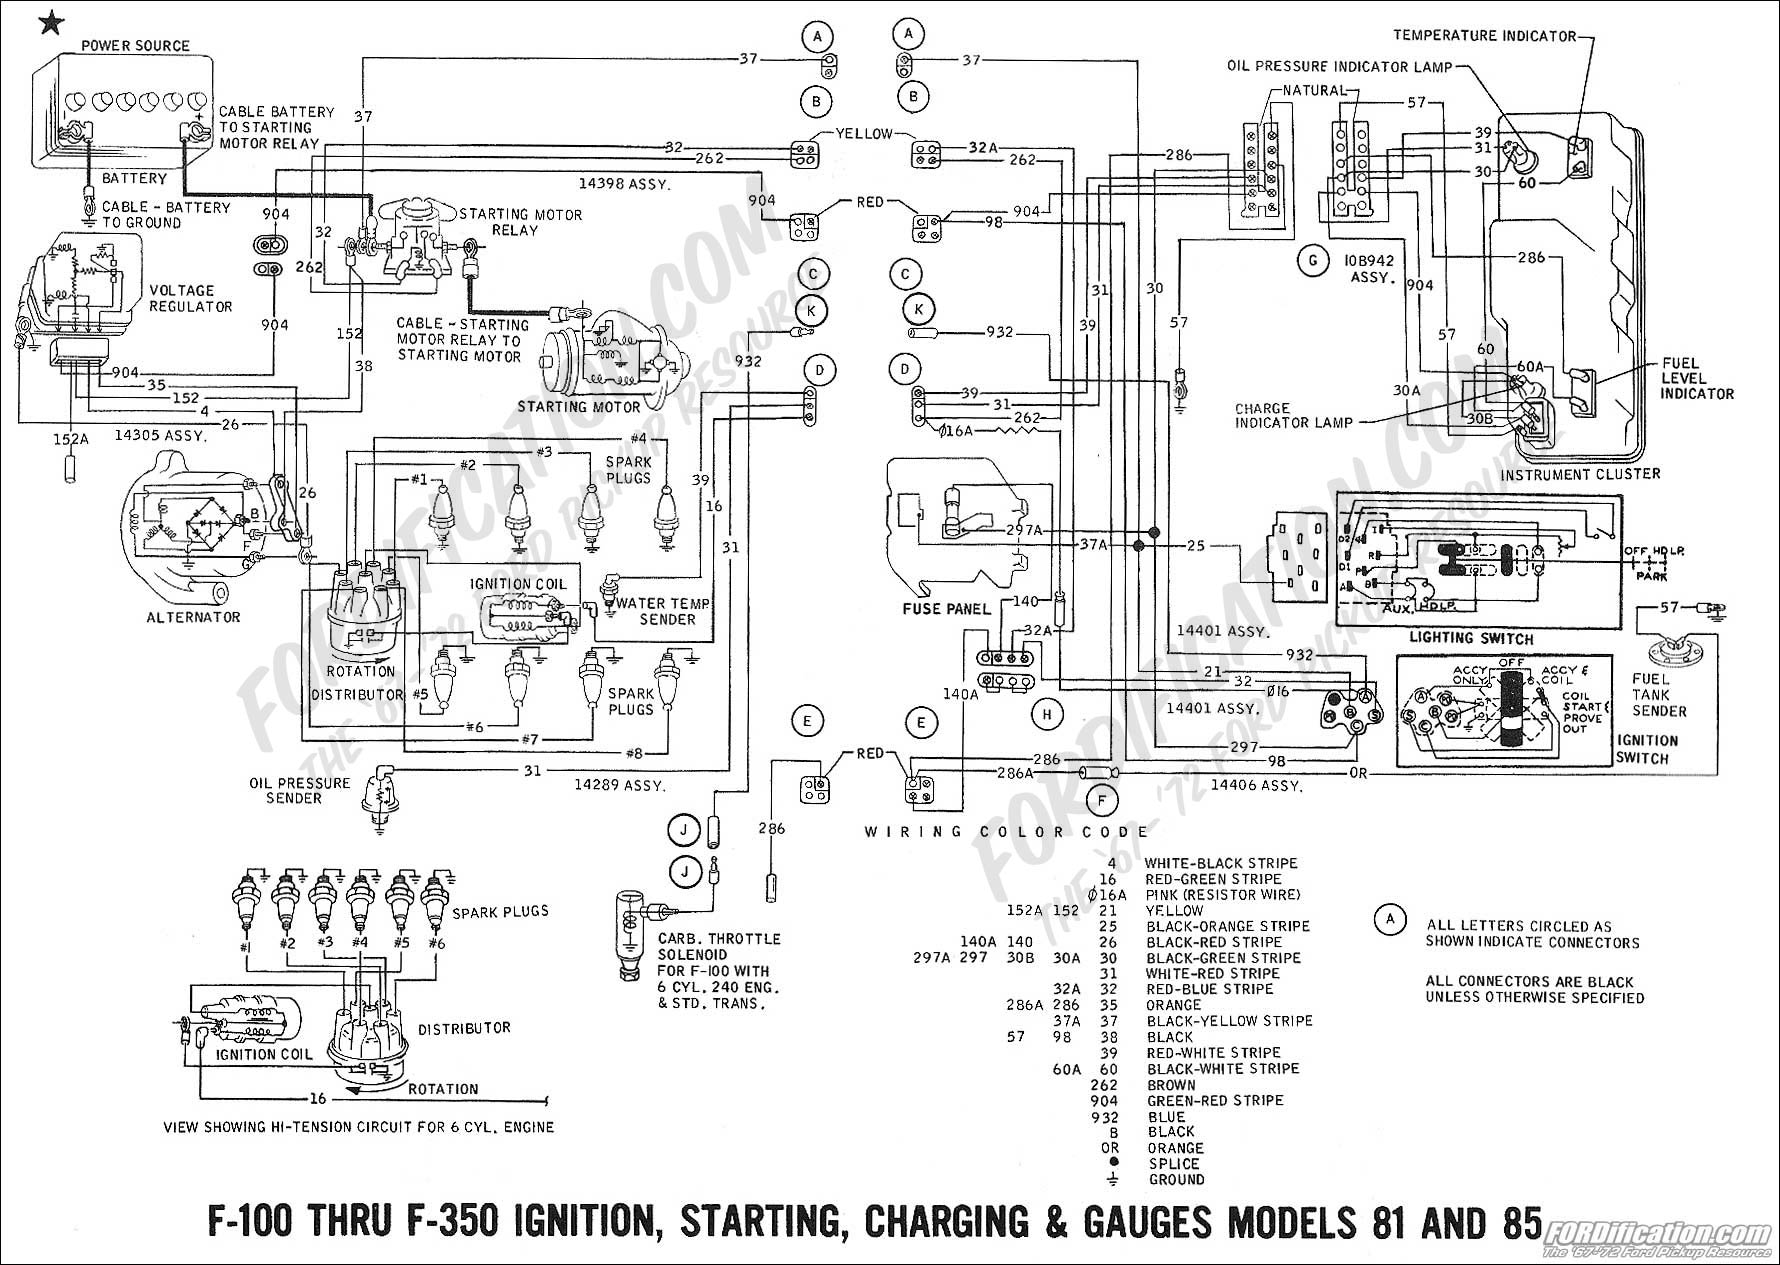 ford truck technical drawings and schematics section h wiring rh fordification com ford f100 wiring diagram 1972 1966 ford f100 wiring diagram